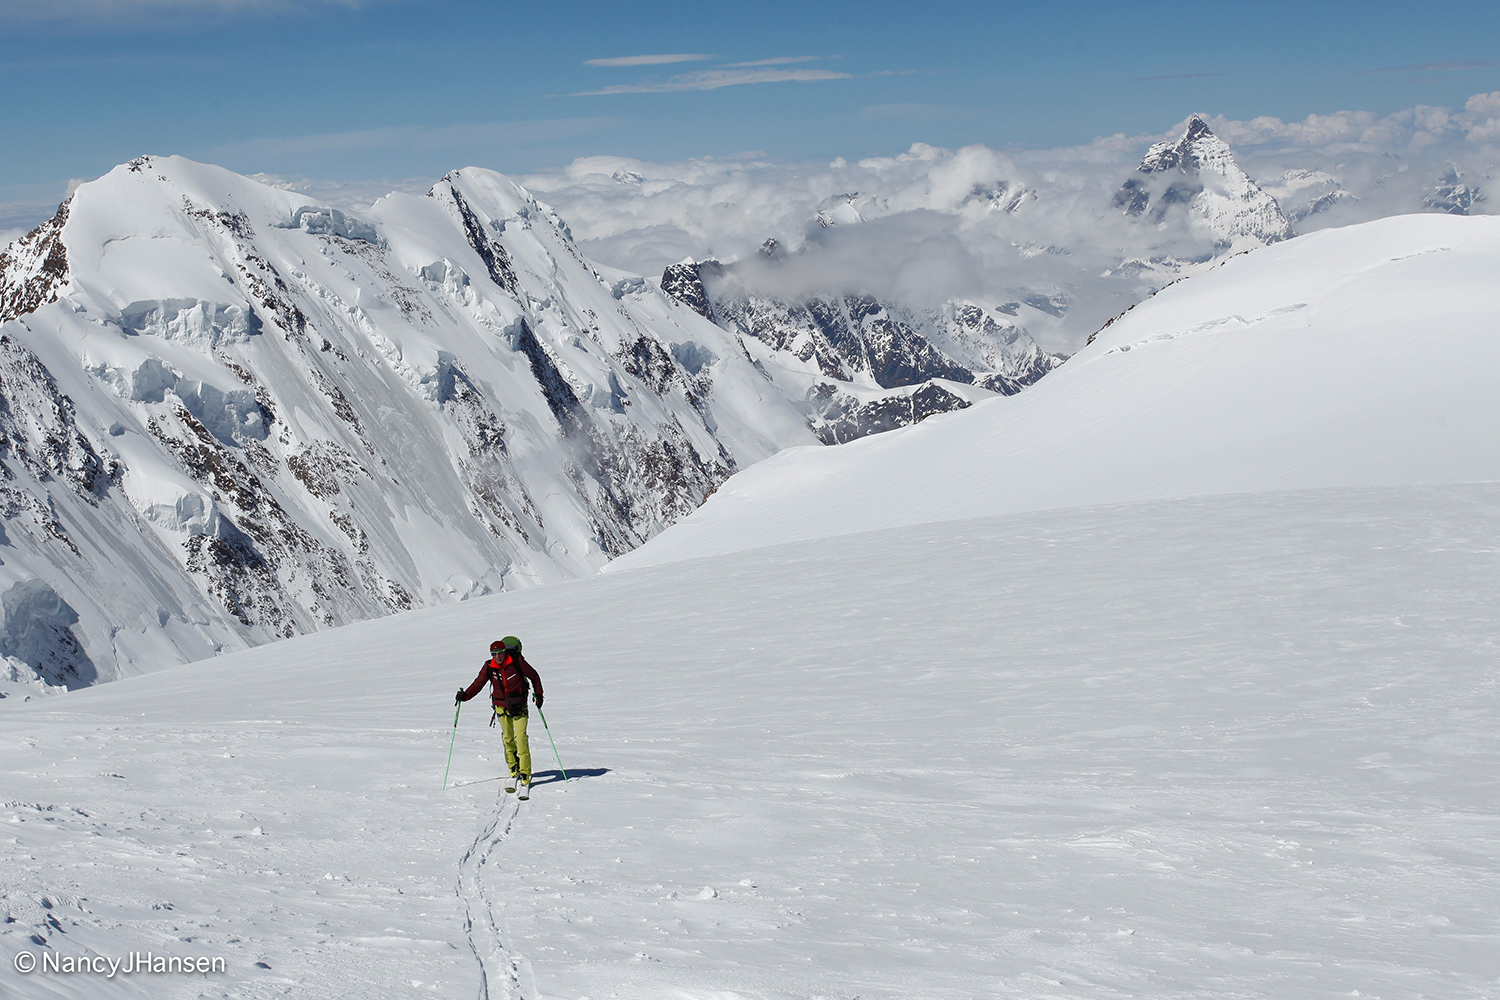 Ralf Dujmovits skiing at about 4,000 m on the Swiss / Italian border. Lyskamm (4,527 m) and the Matterhorn (4,478 m) are behind him. Photo by Nancy Hansen.